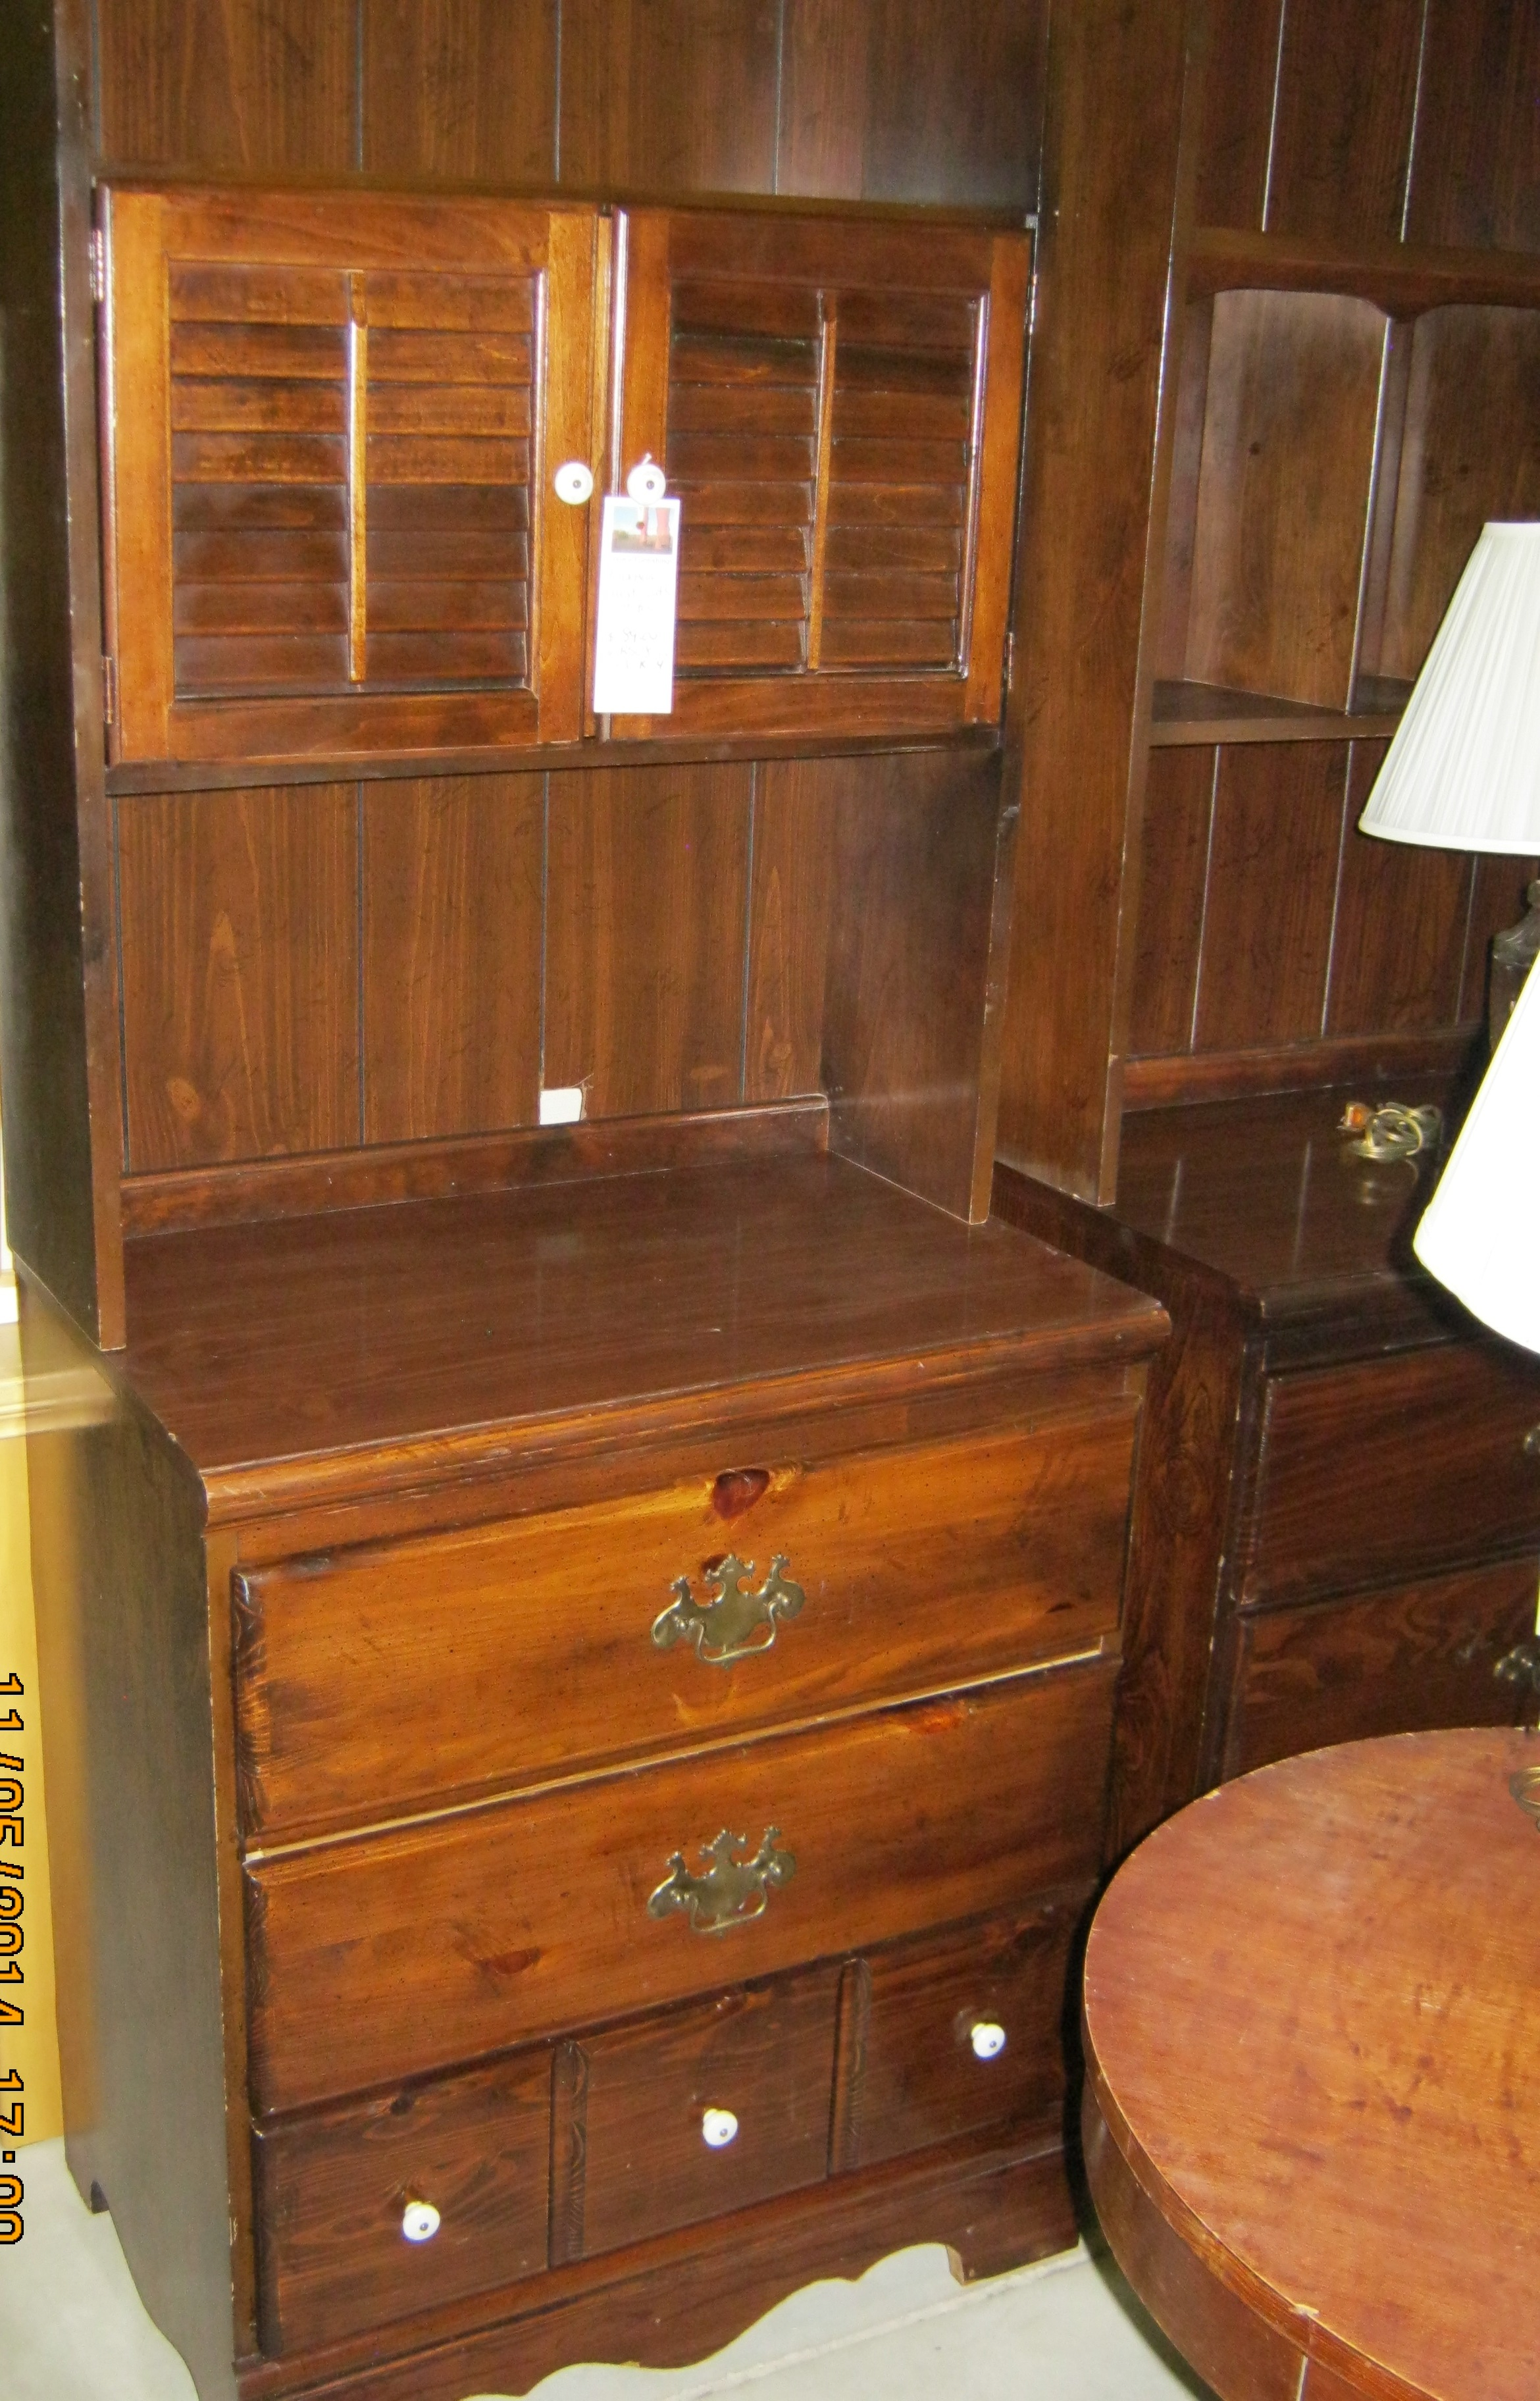 RS-08 3 Drawer Dresser and Hutch